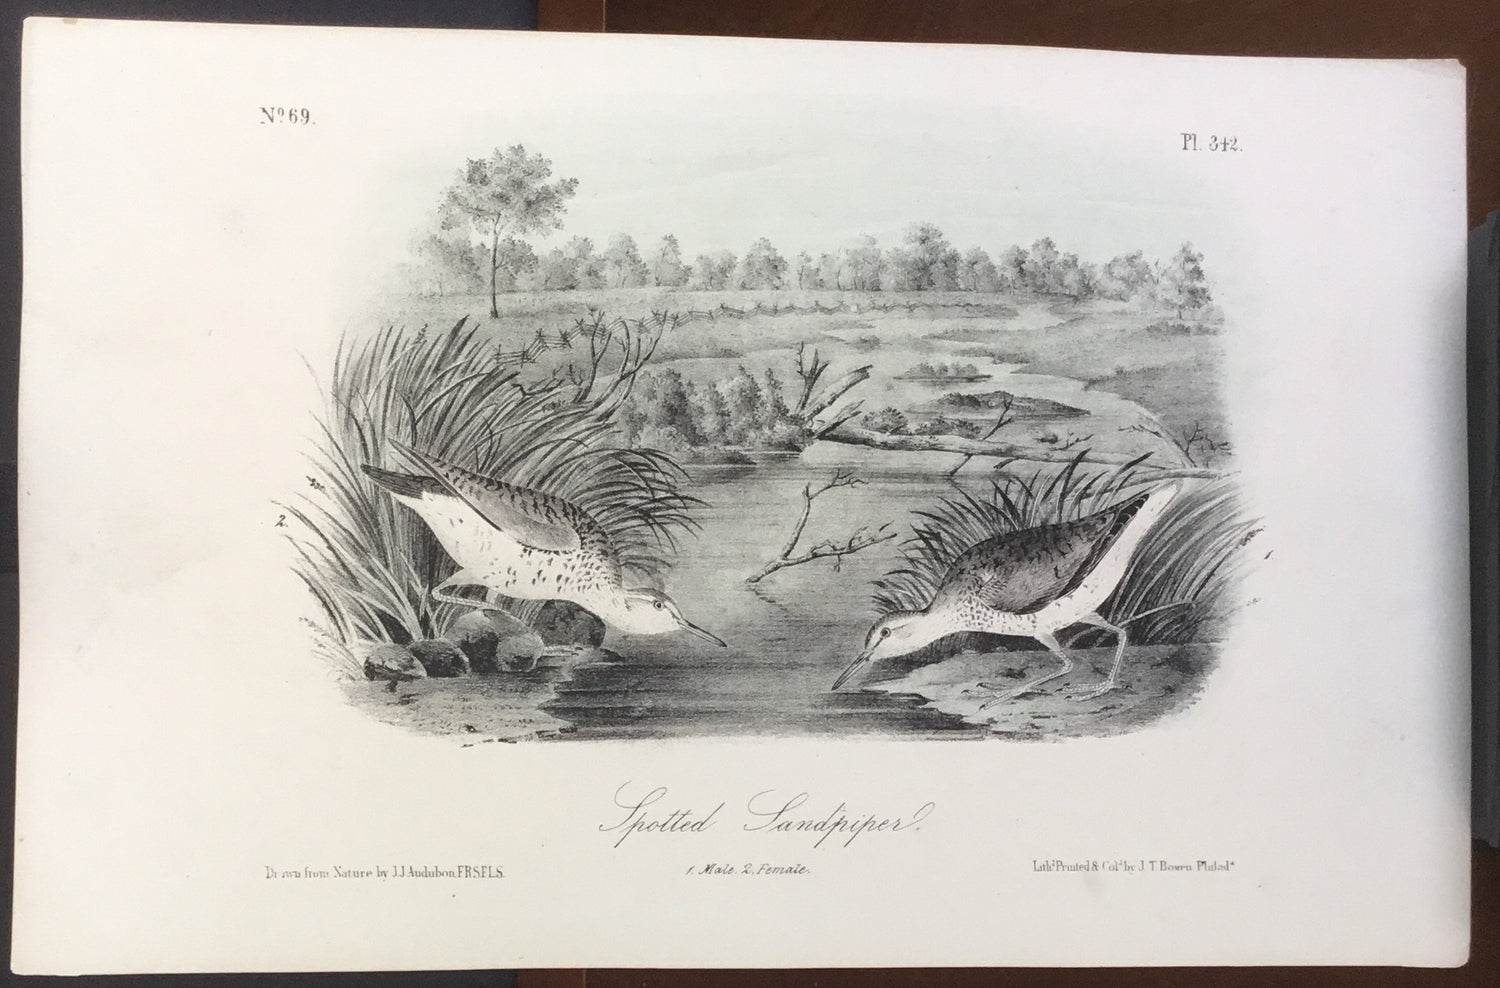 Audubon Octavo Spotted Sandpiper (3), plate 342, uncolored test sheet, 7 x 11